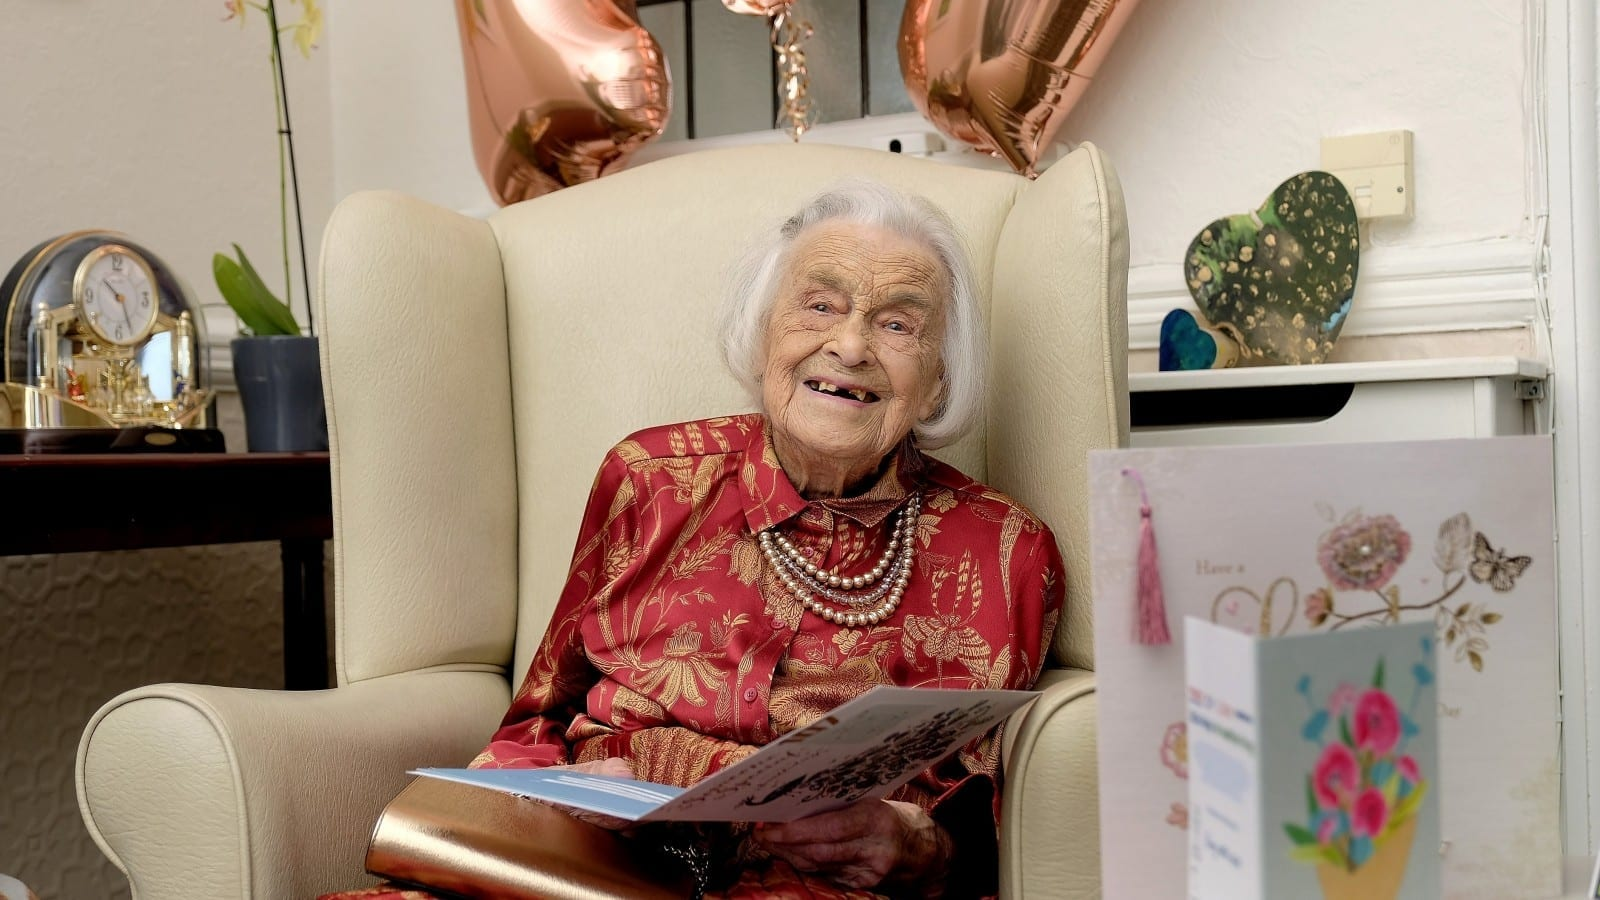 A Sprightly Spinster Who Has Celebrated Her 107th Birthday Has Revealed The Secret To Her Longevity – Staying Single